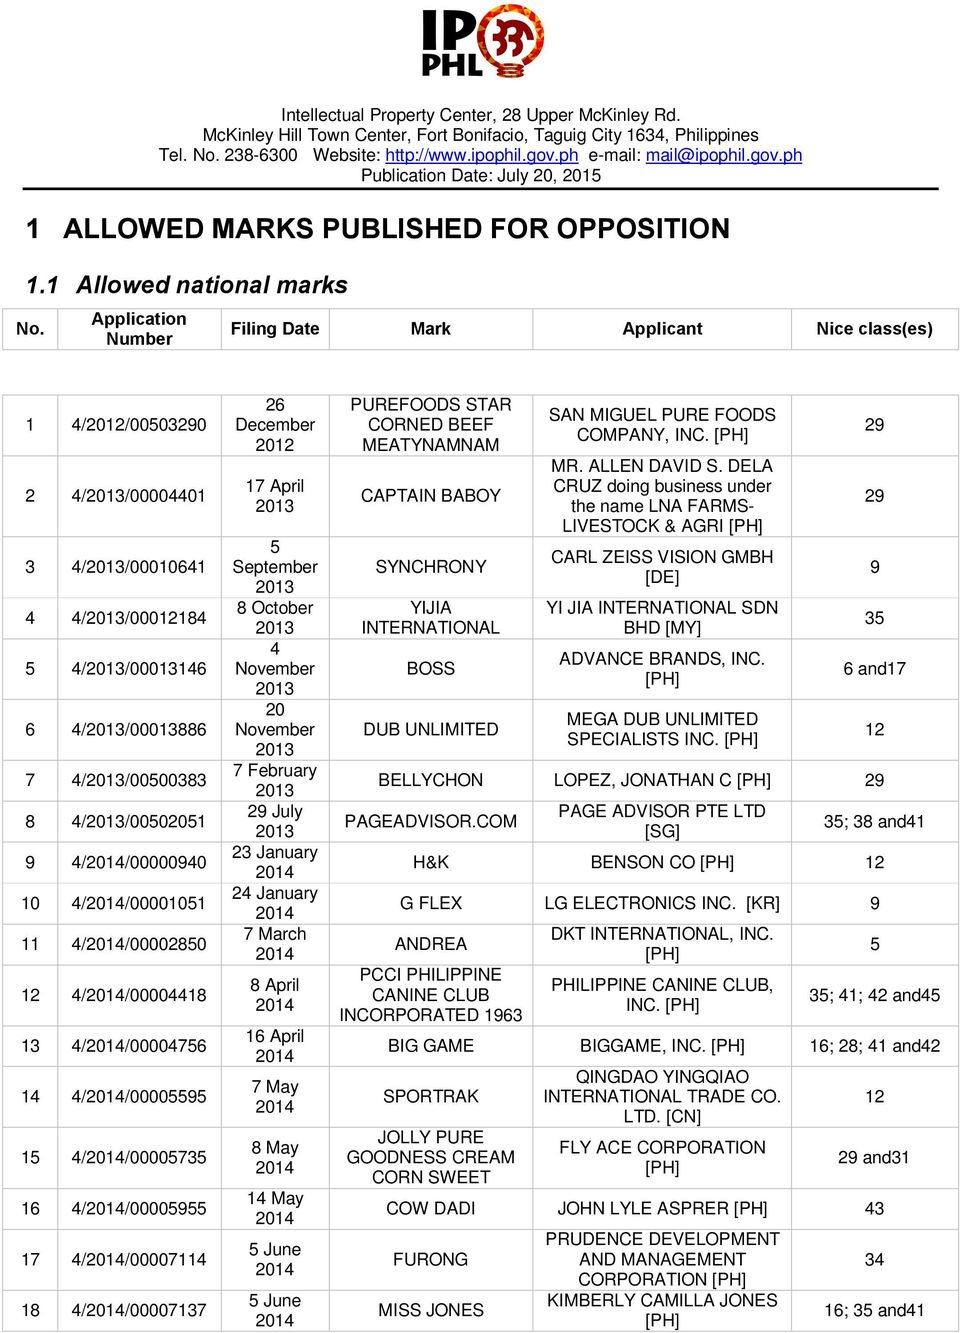 ALLOWED MARKS PUBLISHED FOR OPPOSITION    - PDF